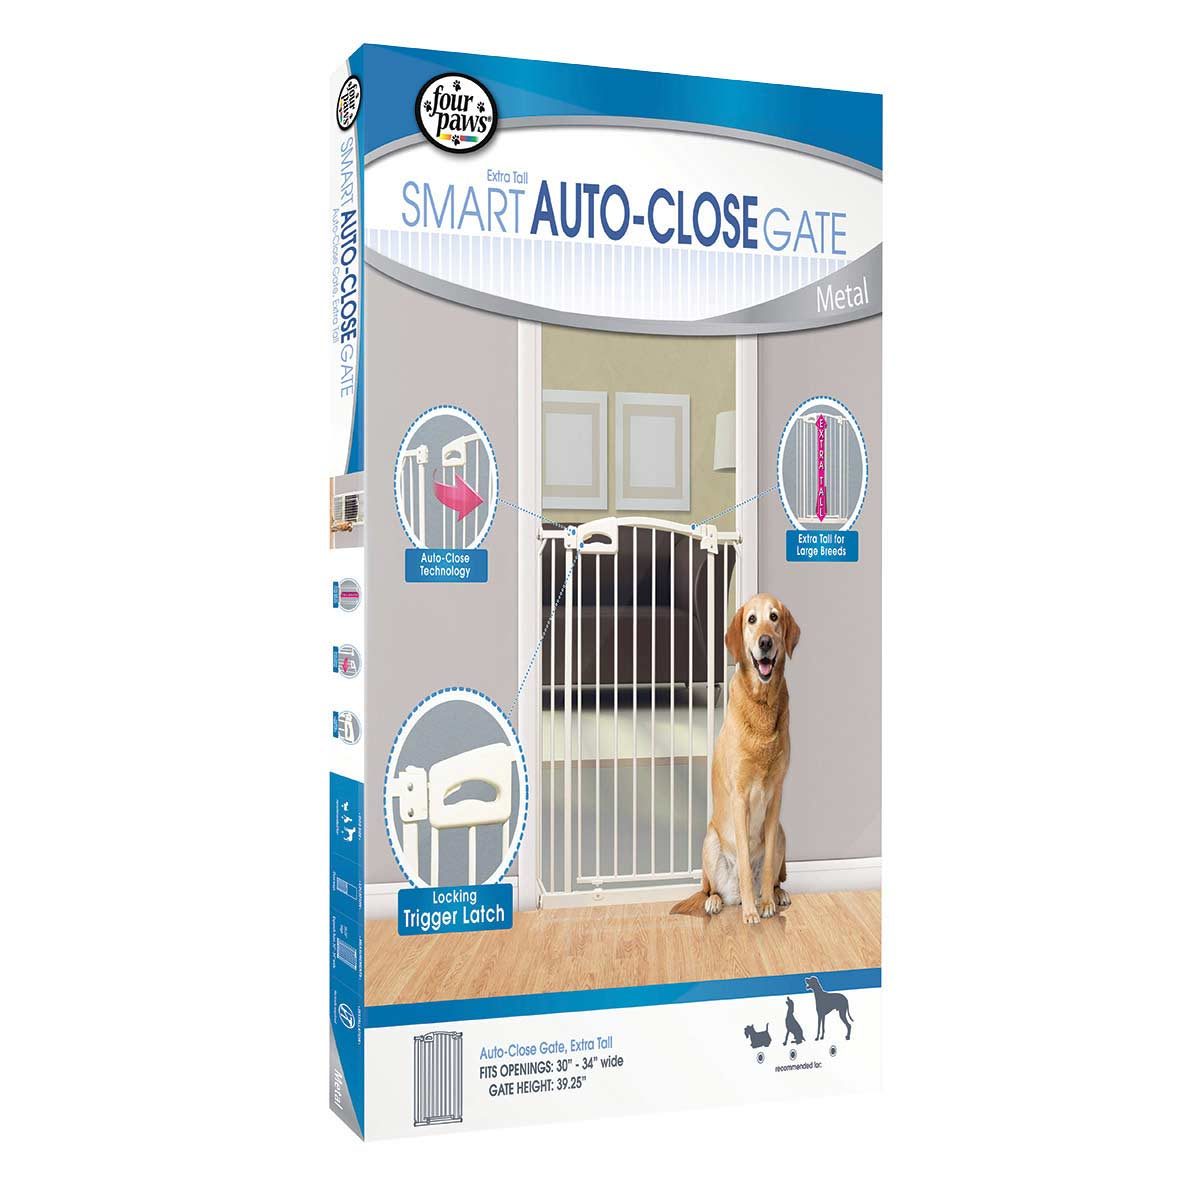 Four Paws Auto Closing Gate Extra Tall 30-34 inches wide by 39.25 inches tall